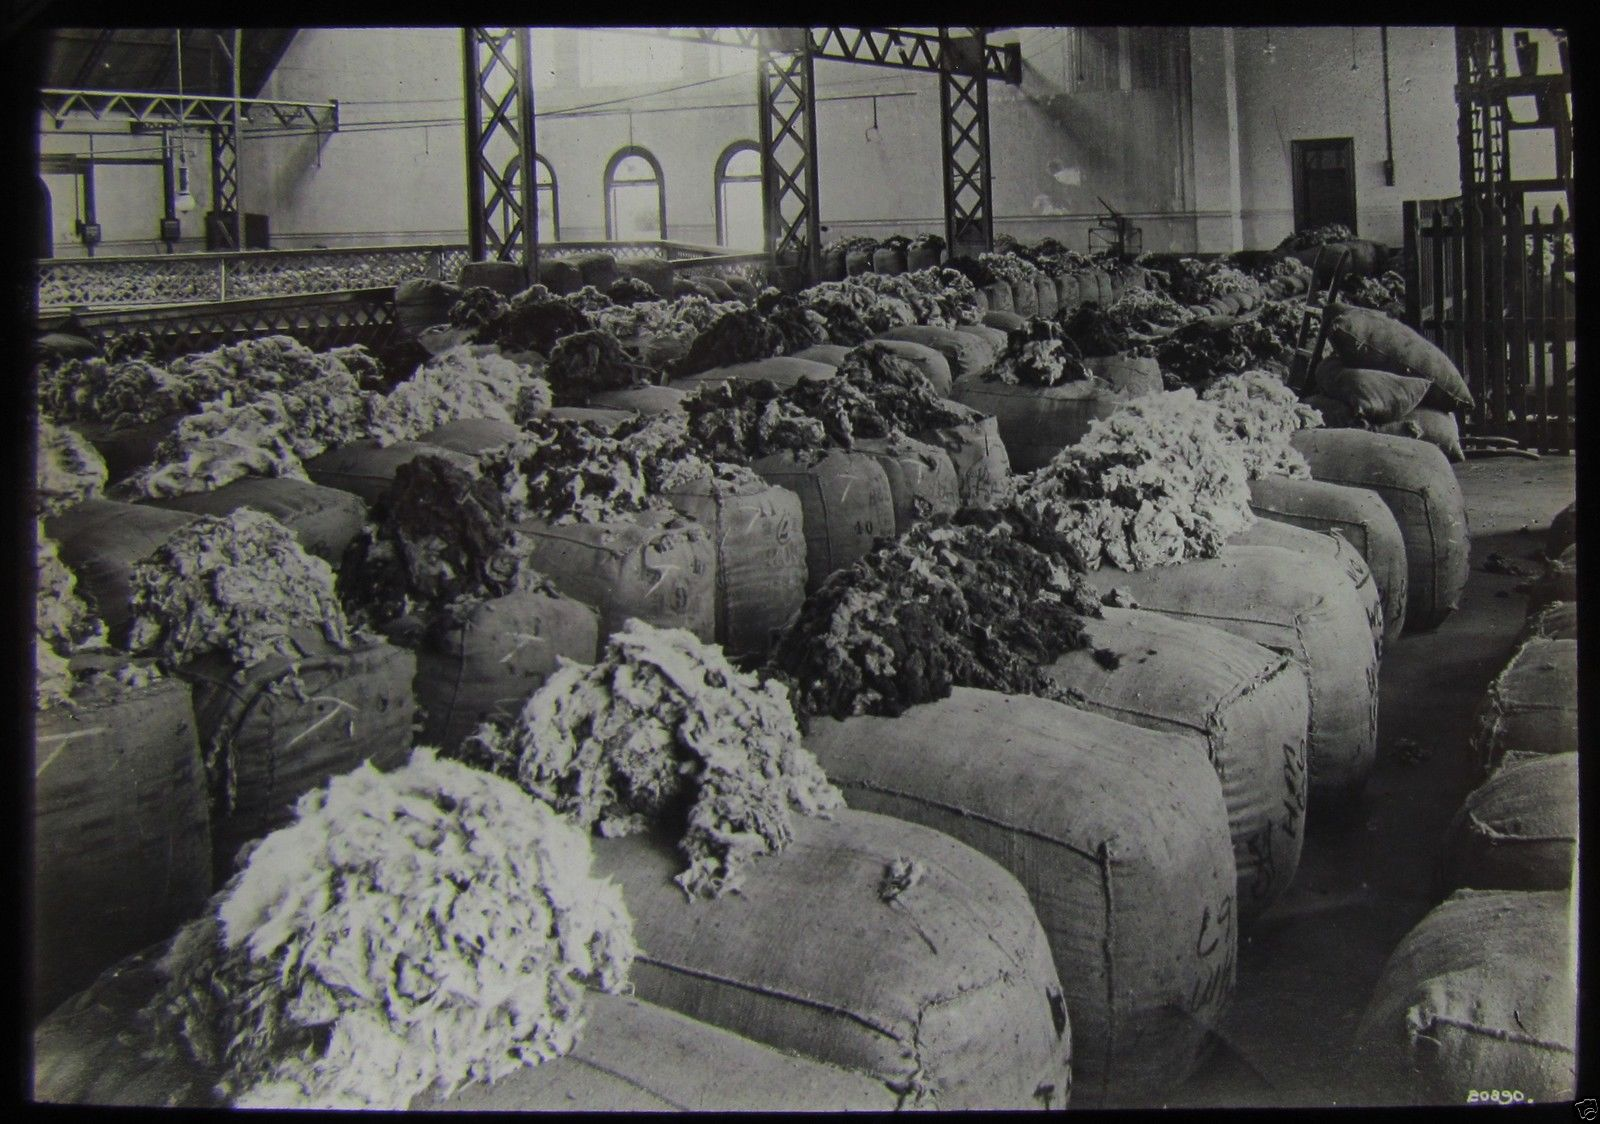 Wool for export